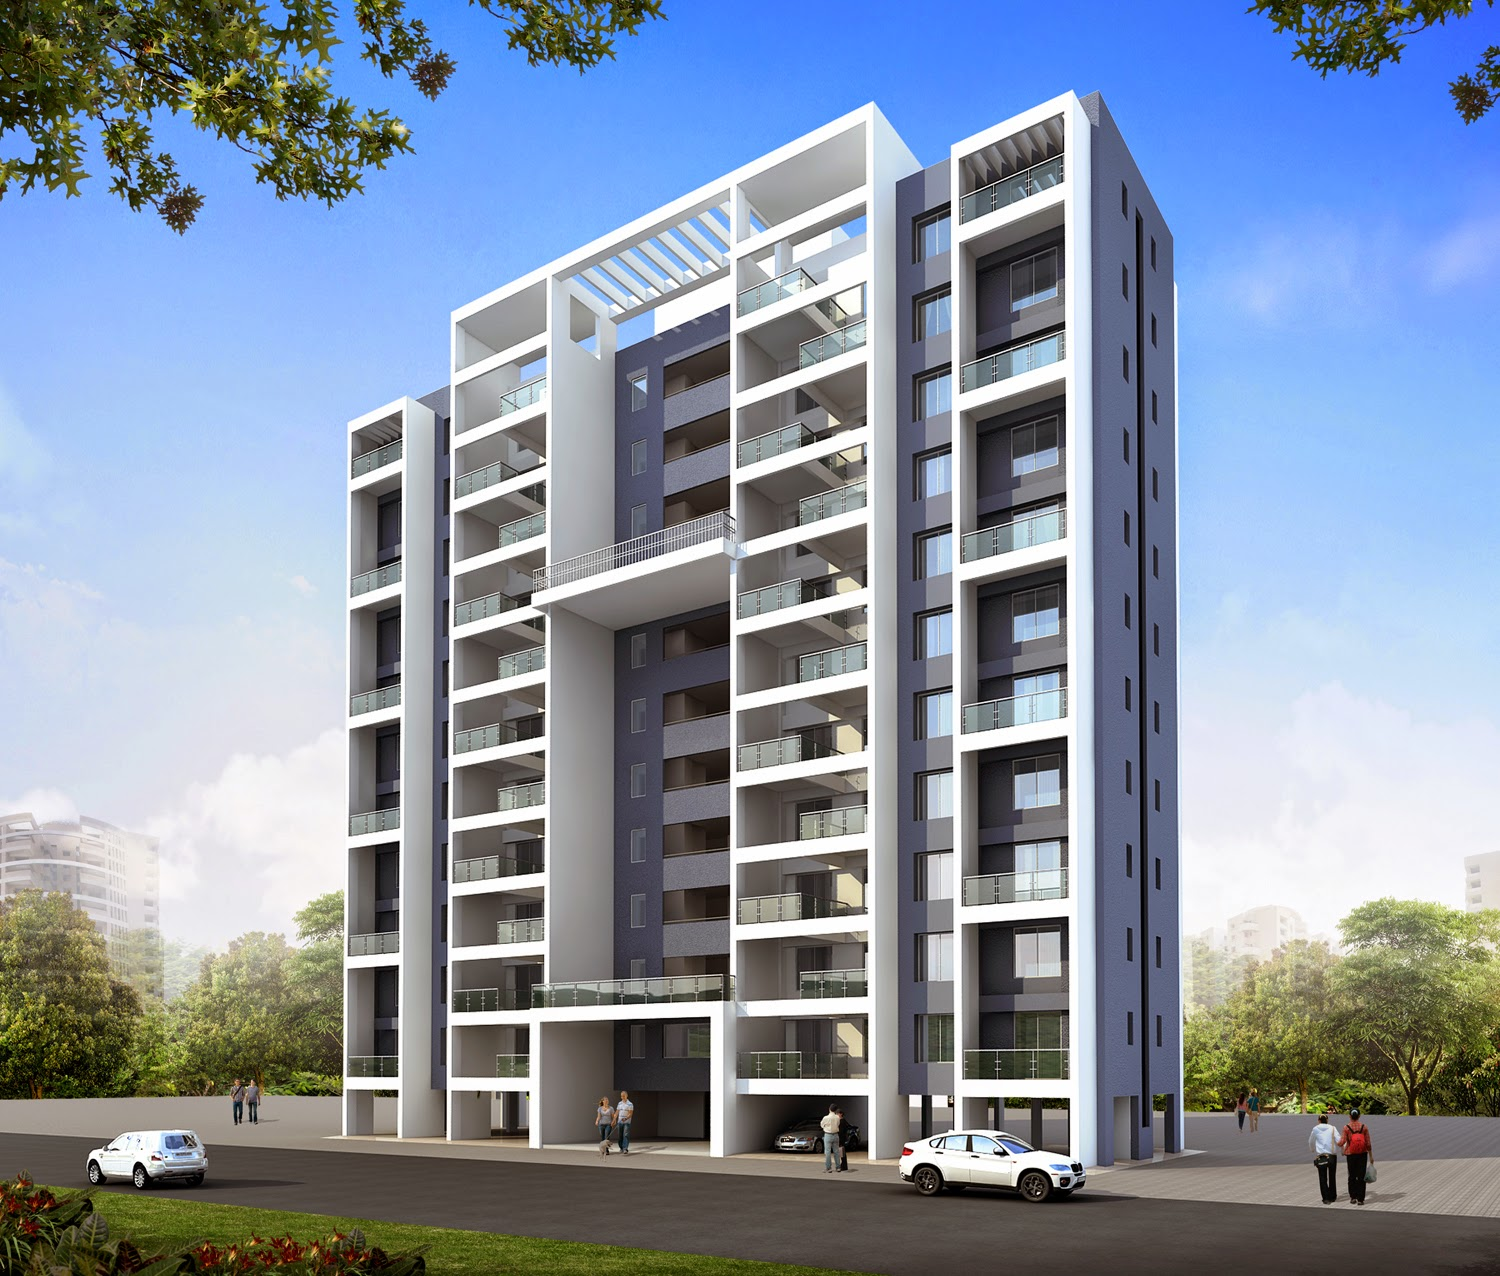 Shaikh zuber rashid modern residential buildings pune for Modern house construction